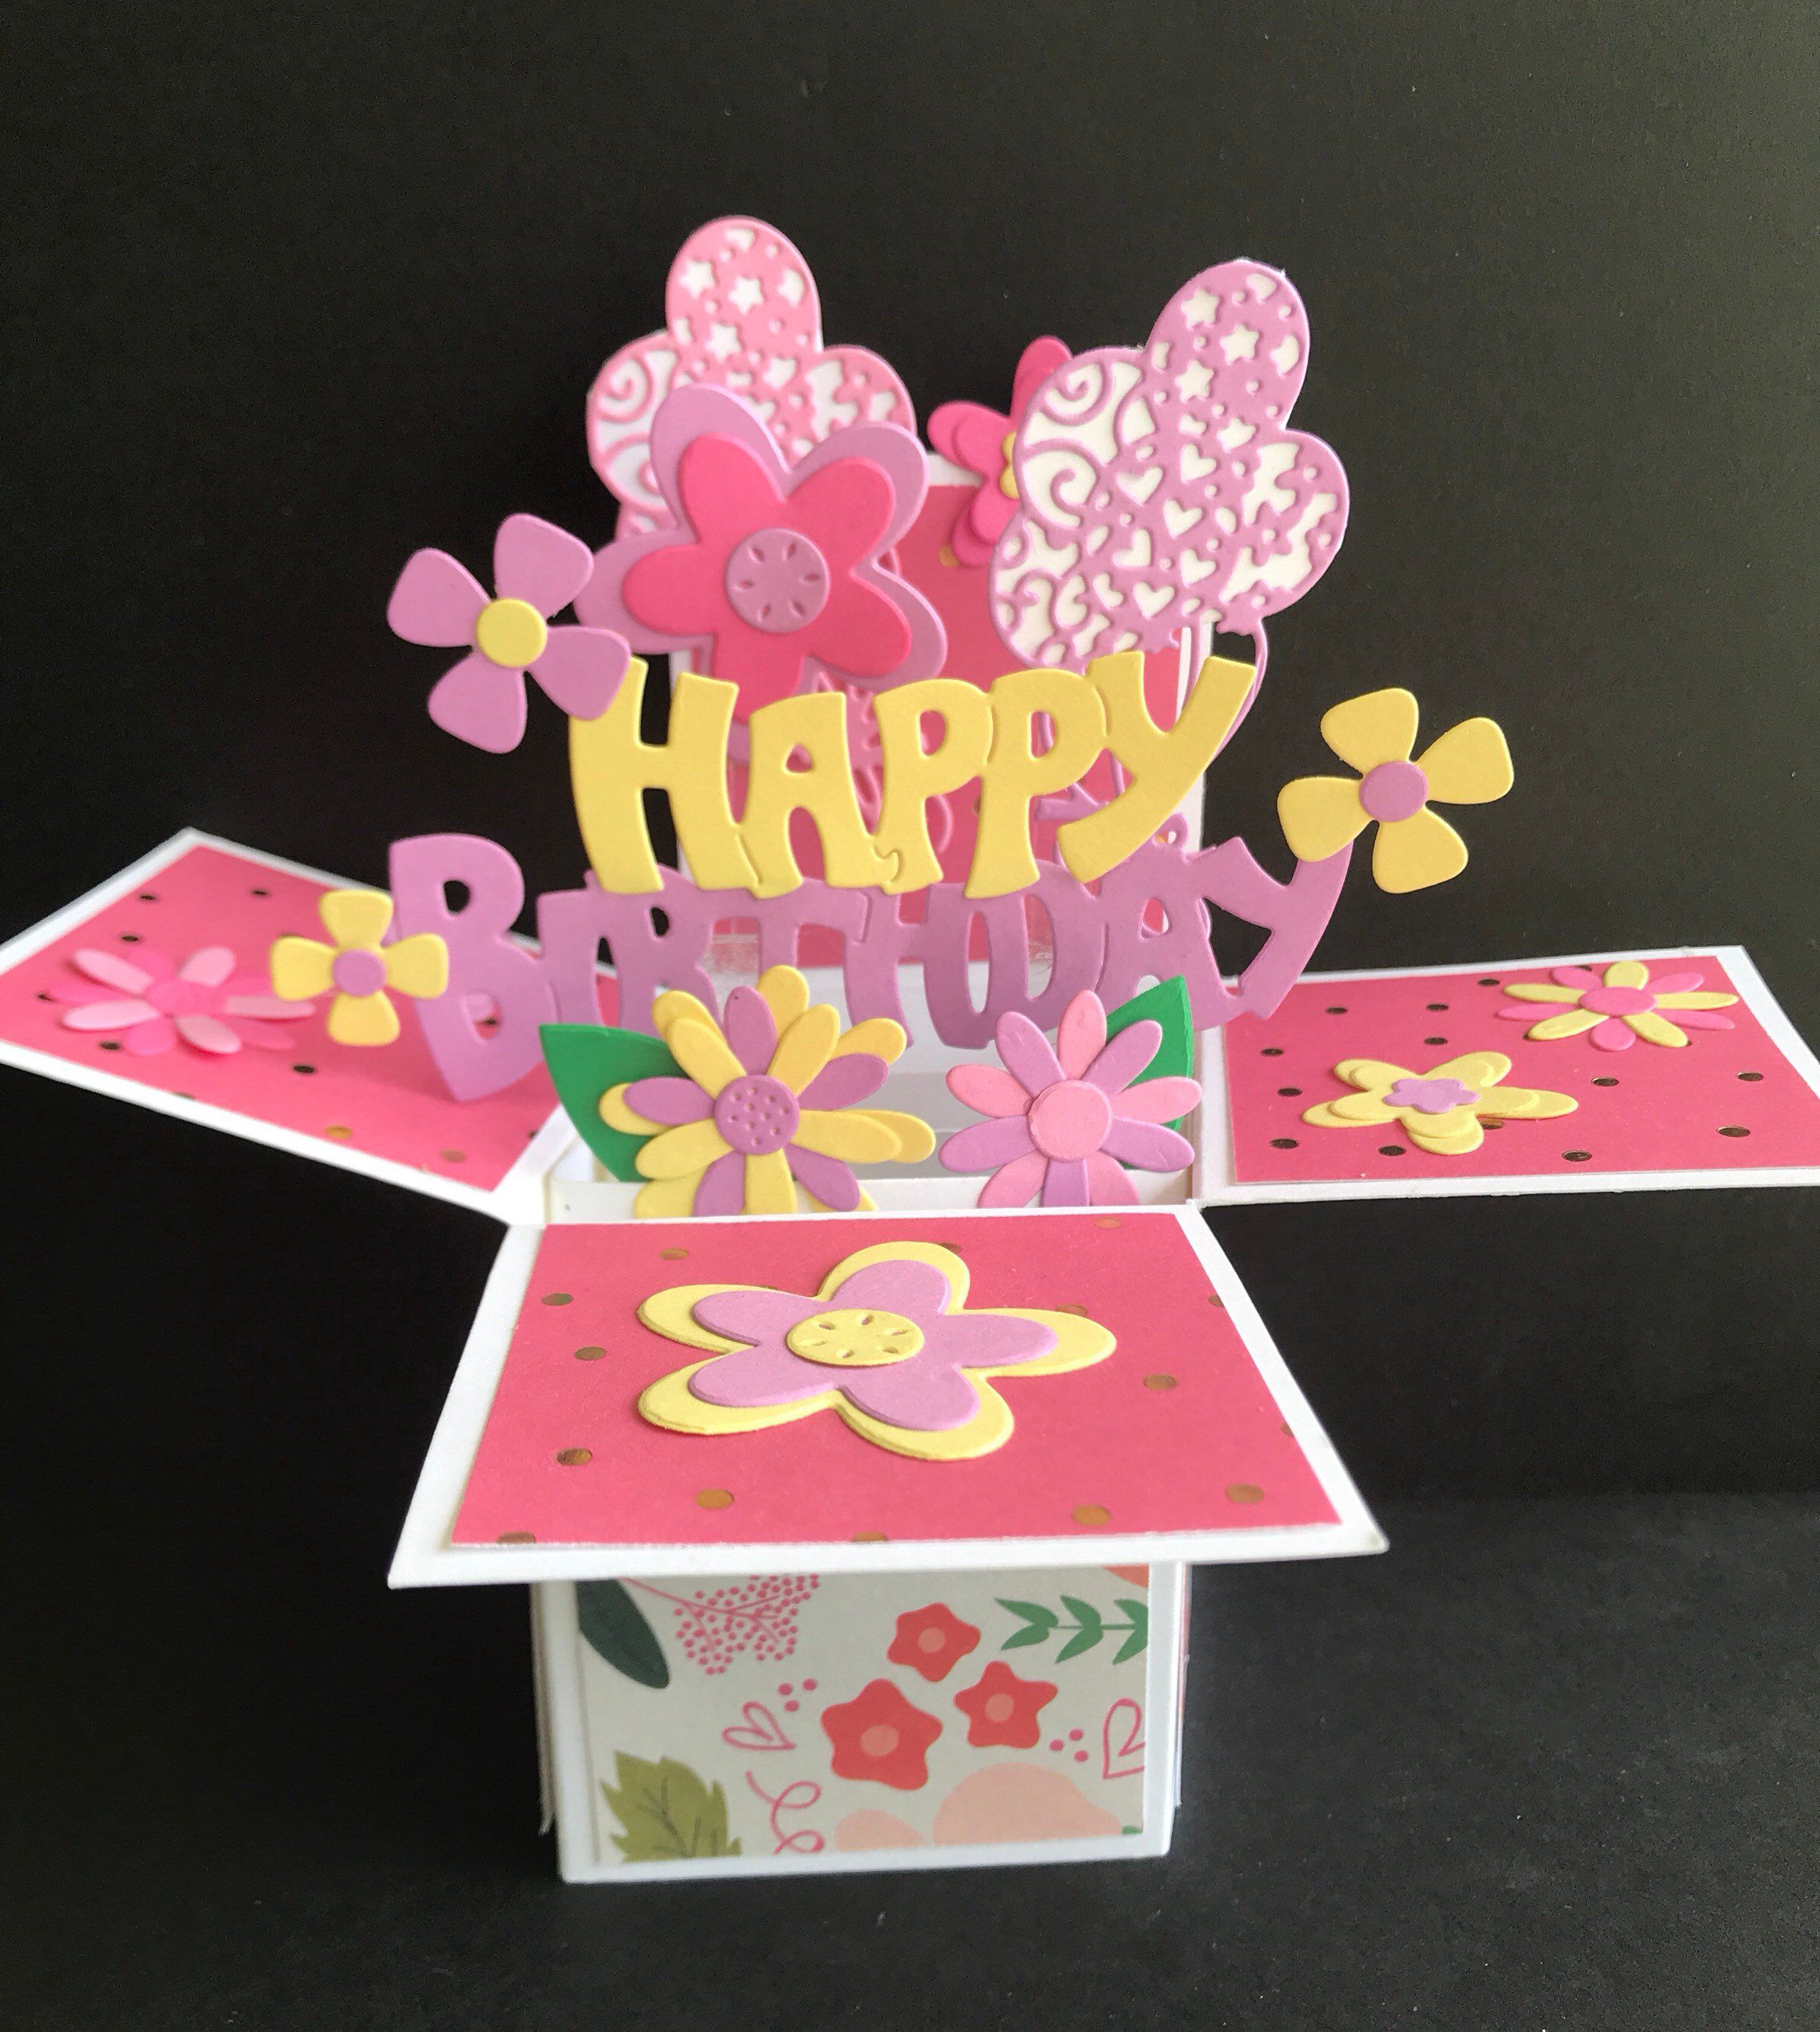 Birthday Pop Up Card Birthday Gift Card Holder Girl Birthday Etsy Flower Birthday Cards Pop Up Box Cards Birthday Gift Cards